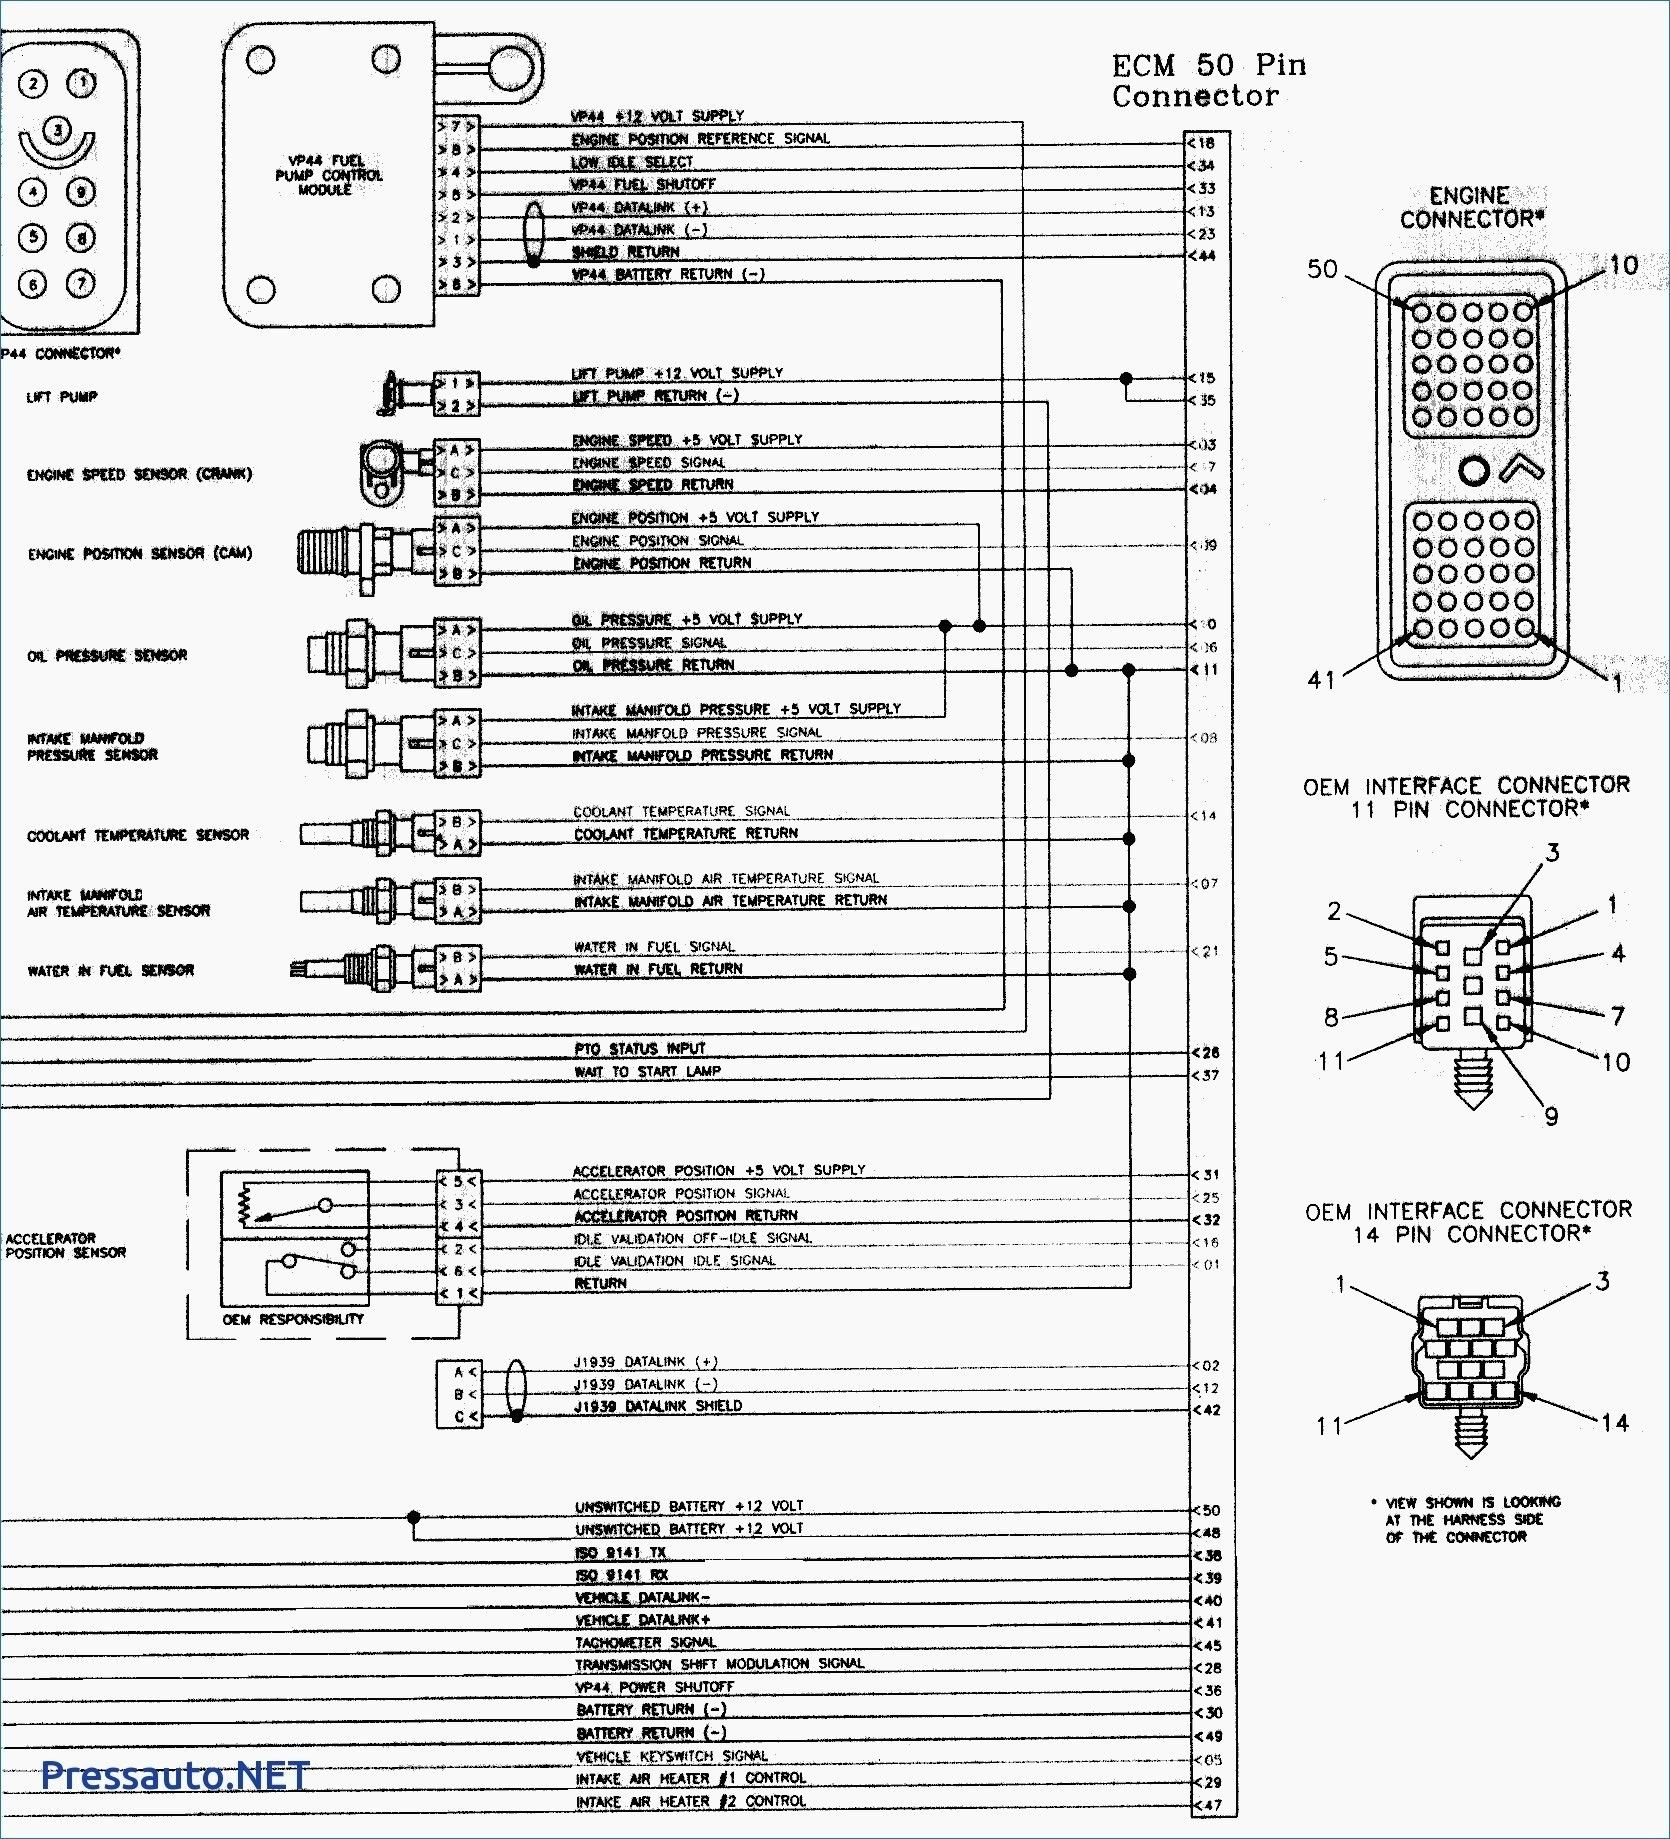 new 2004 dodge ram 1500 ignition wiring diagram | dodge ram, 2004 dodge ram  1500, dodge trucks ram  pinterest